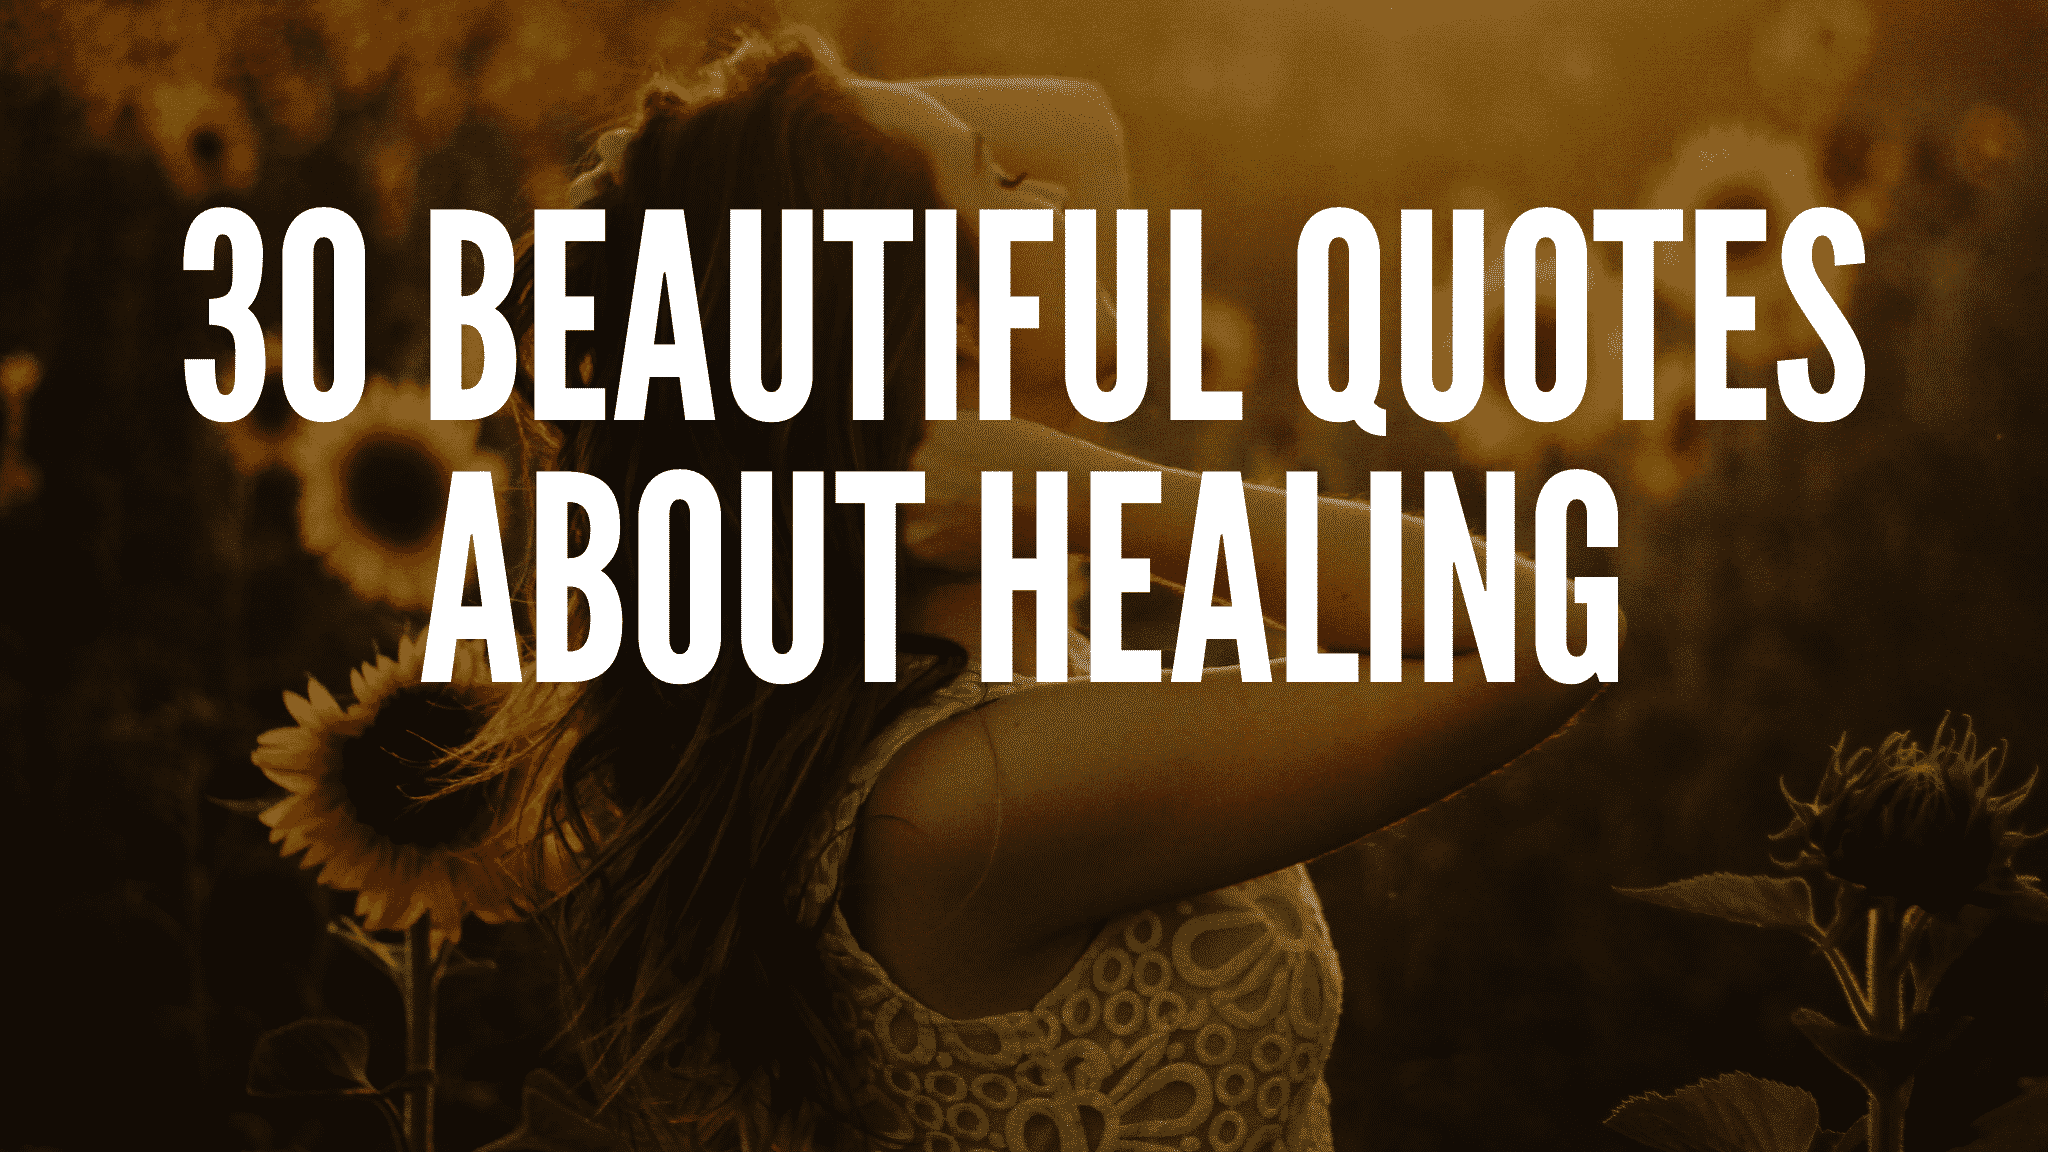 30 Beautiful Quotes About Healing